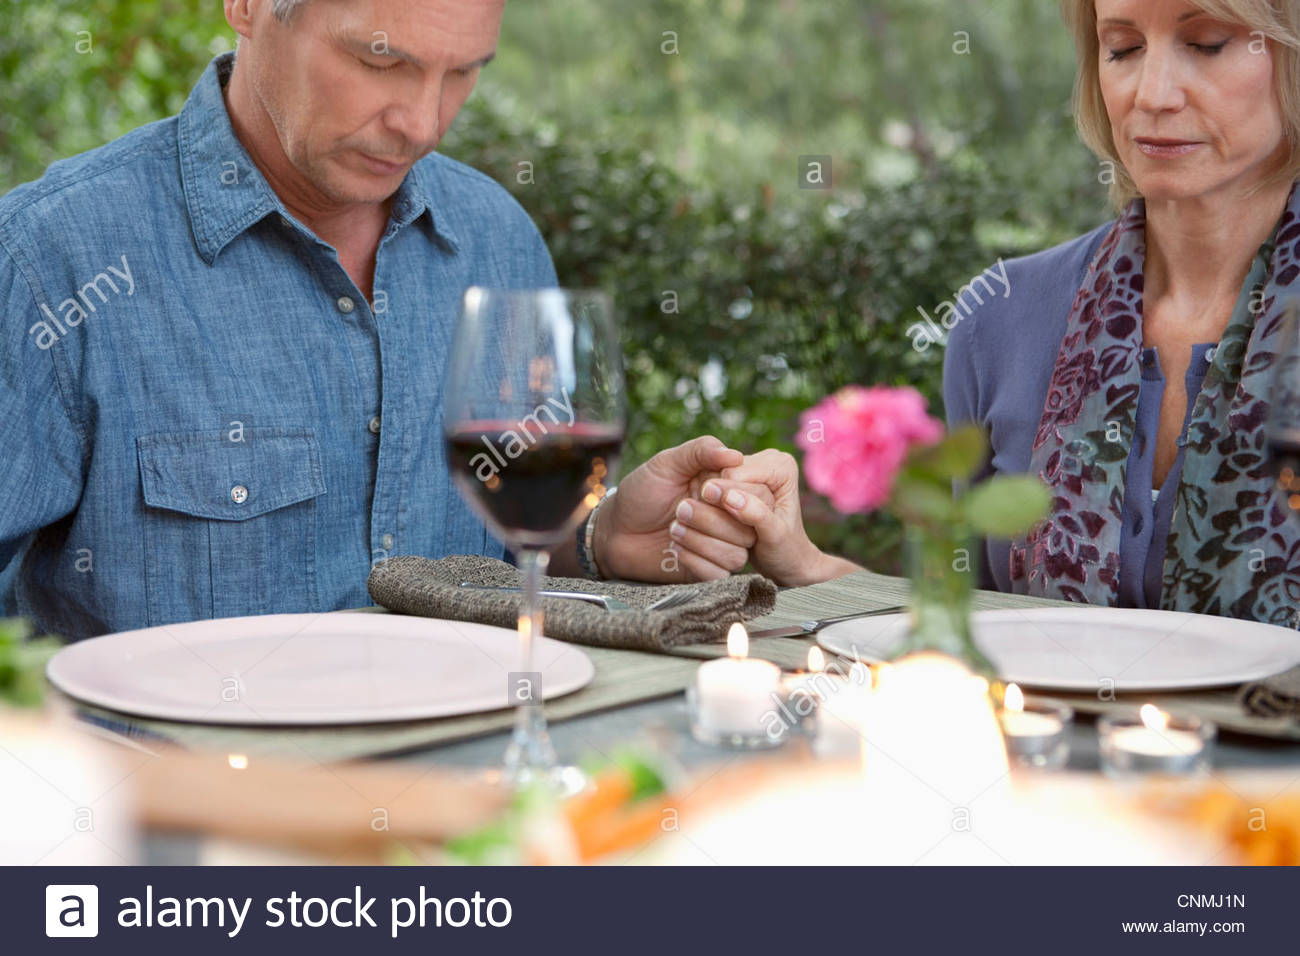 Older couple praying at dinner table - Stock Image